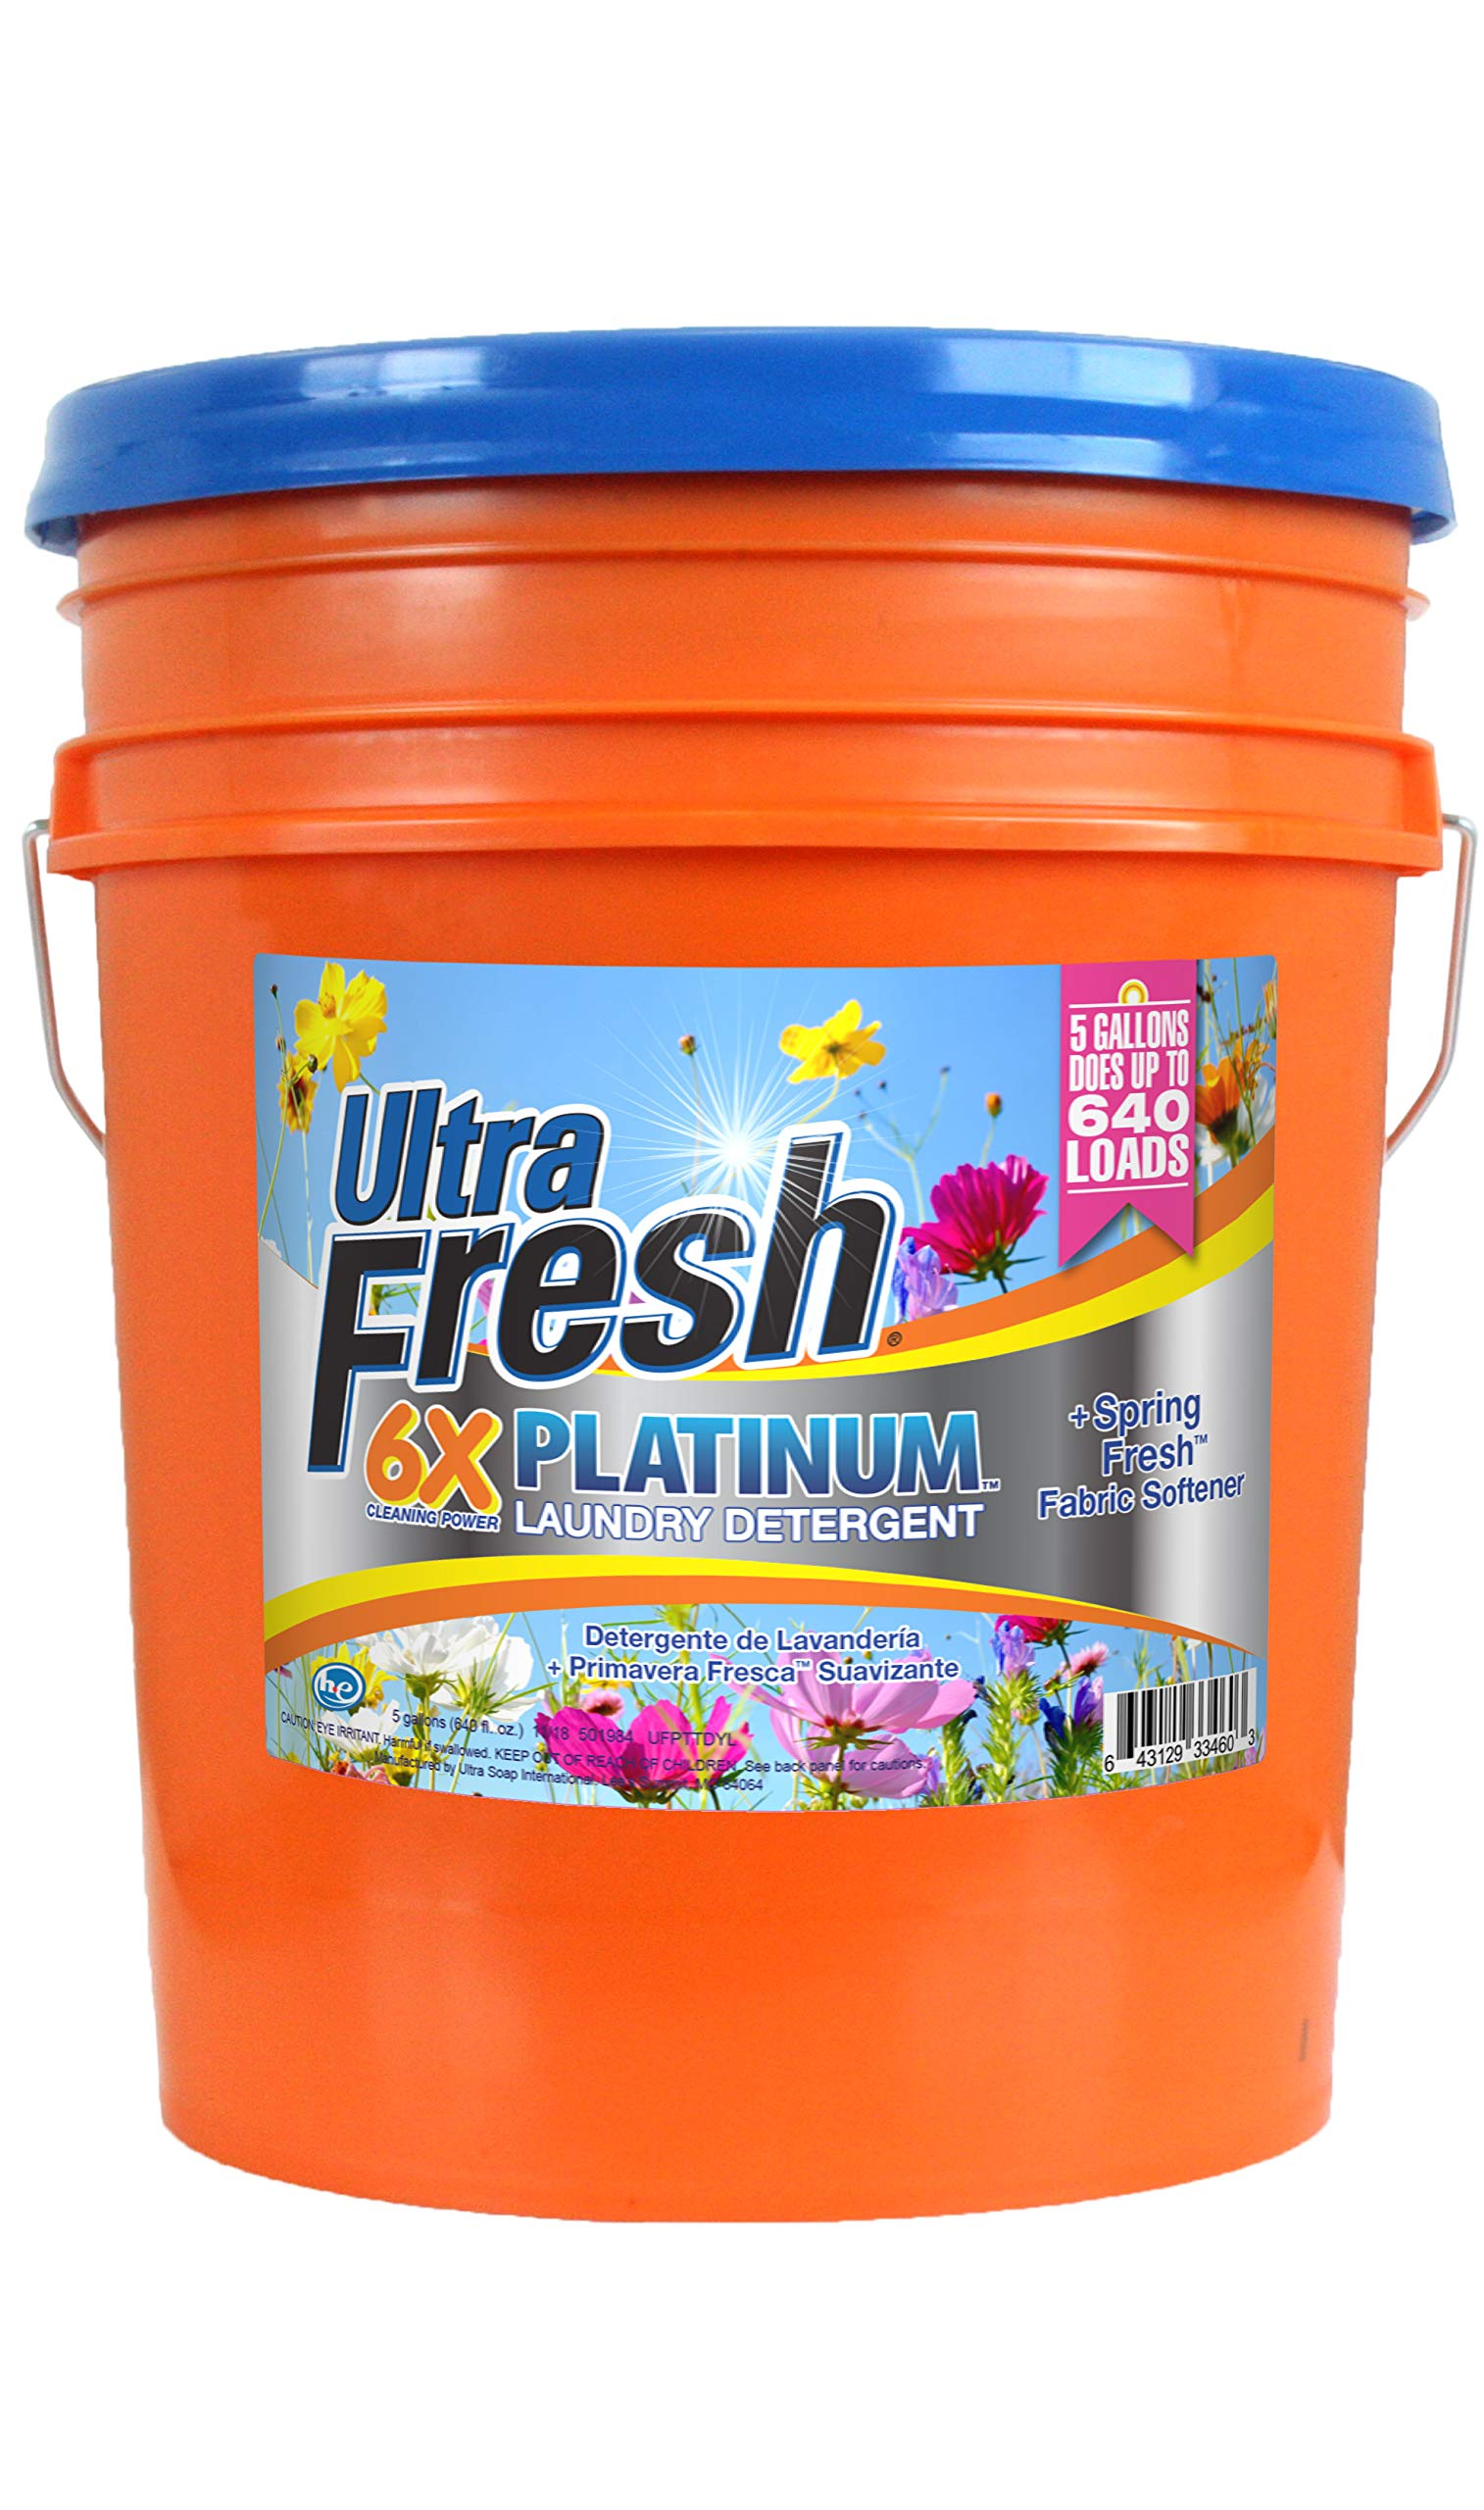 Ultra Fresh Platinum Original Blue Plus Fabric Softener HE Liquid Laundry Detergent. Concentrated; Does Up to 640 Loads. Compares to Well Known Name Brand. 5 Gallons (640 oz